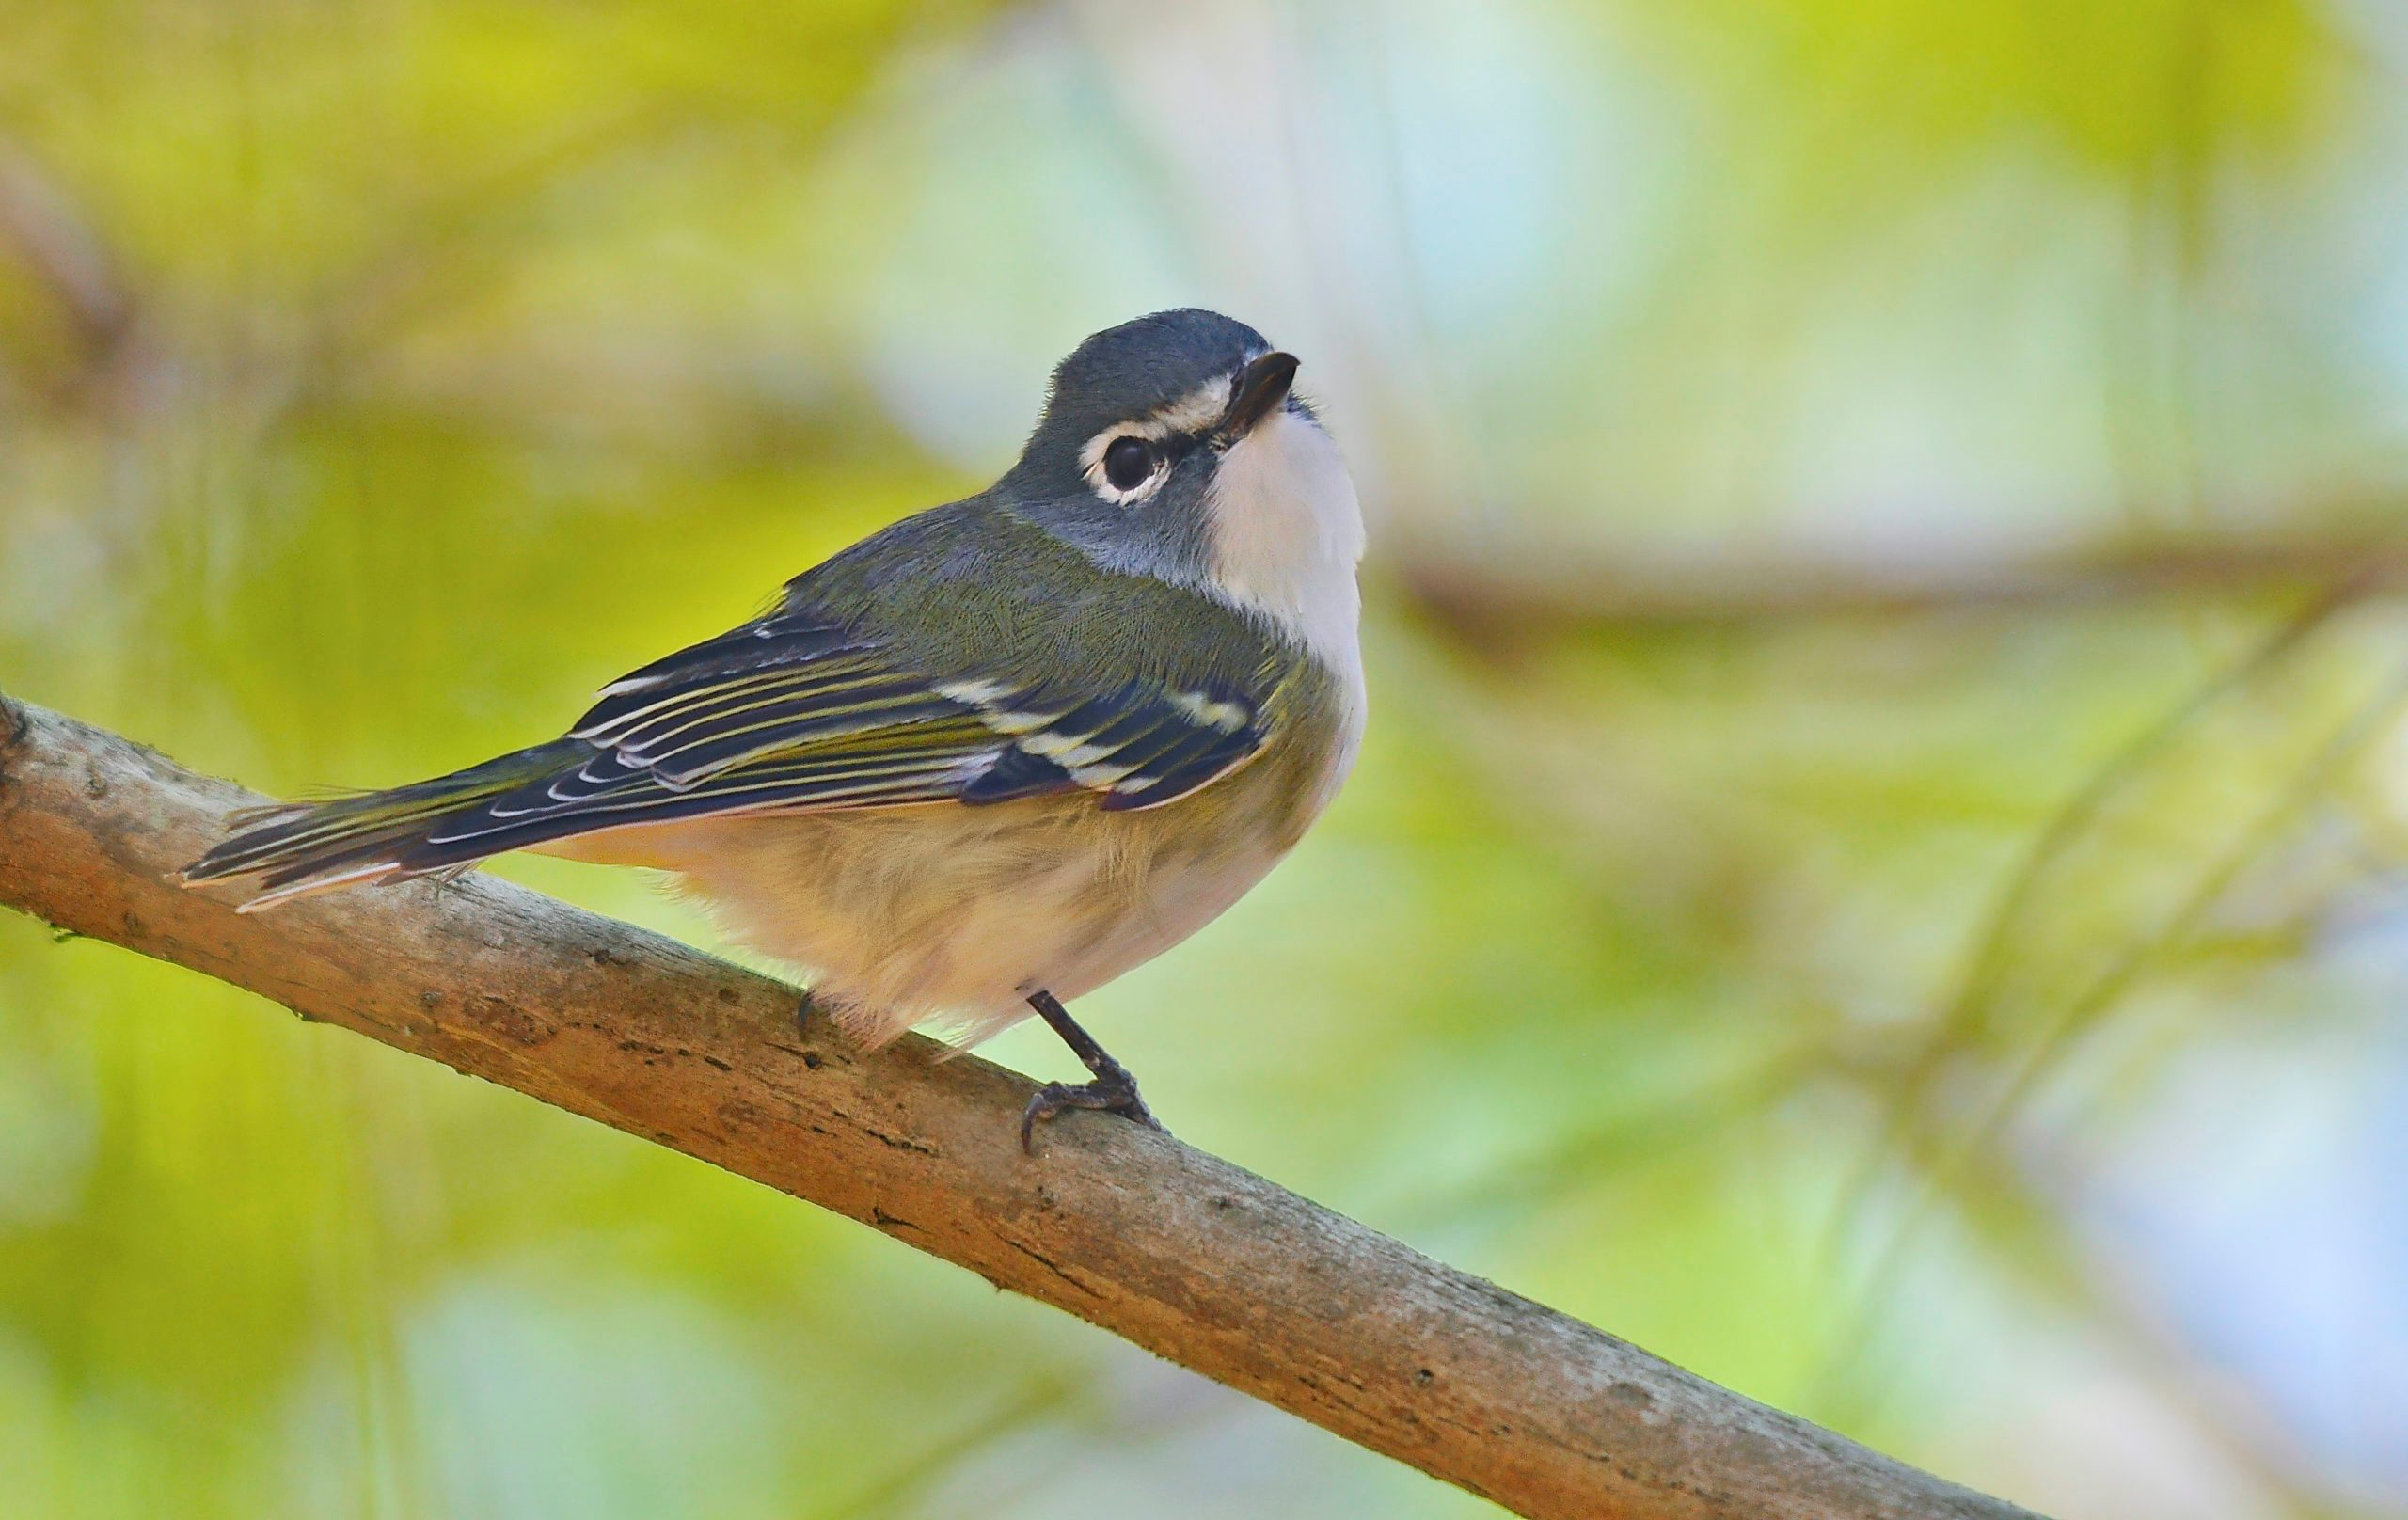 A blue-headed vireo sitting in a tree.